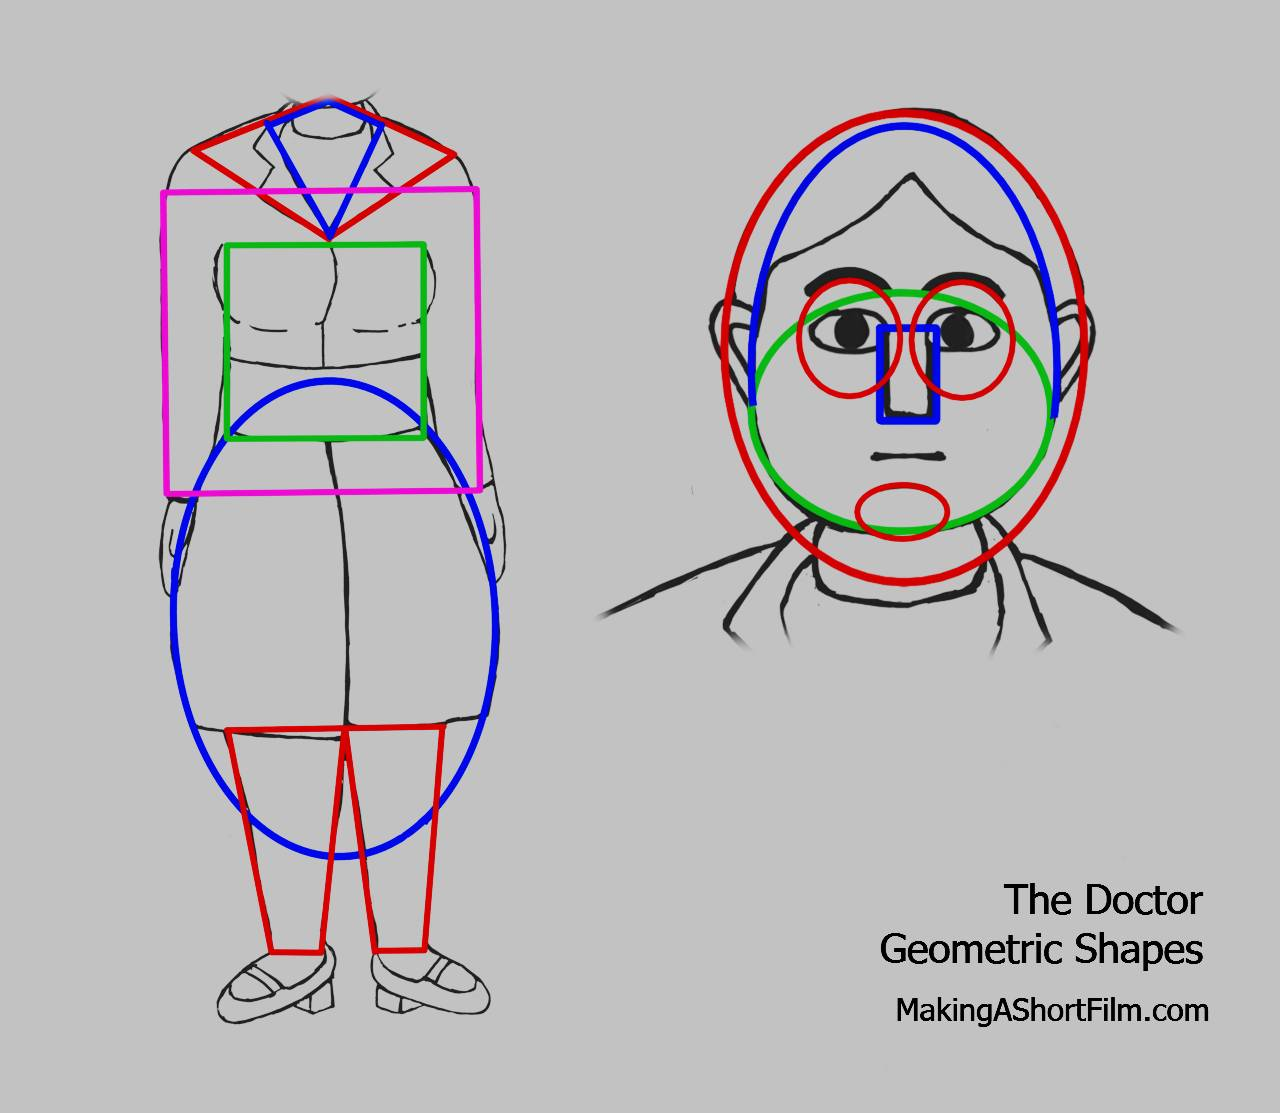 The geometric shapes of the Doctor